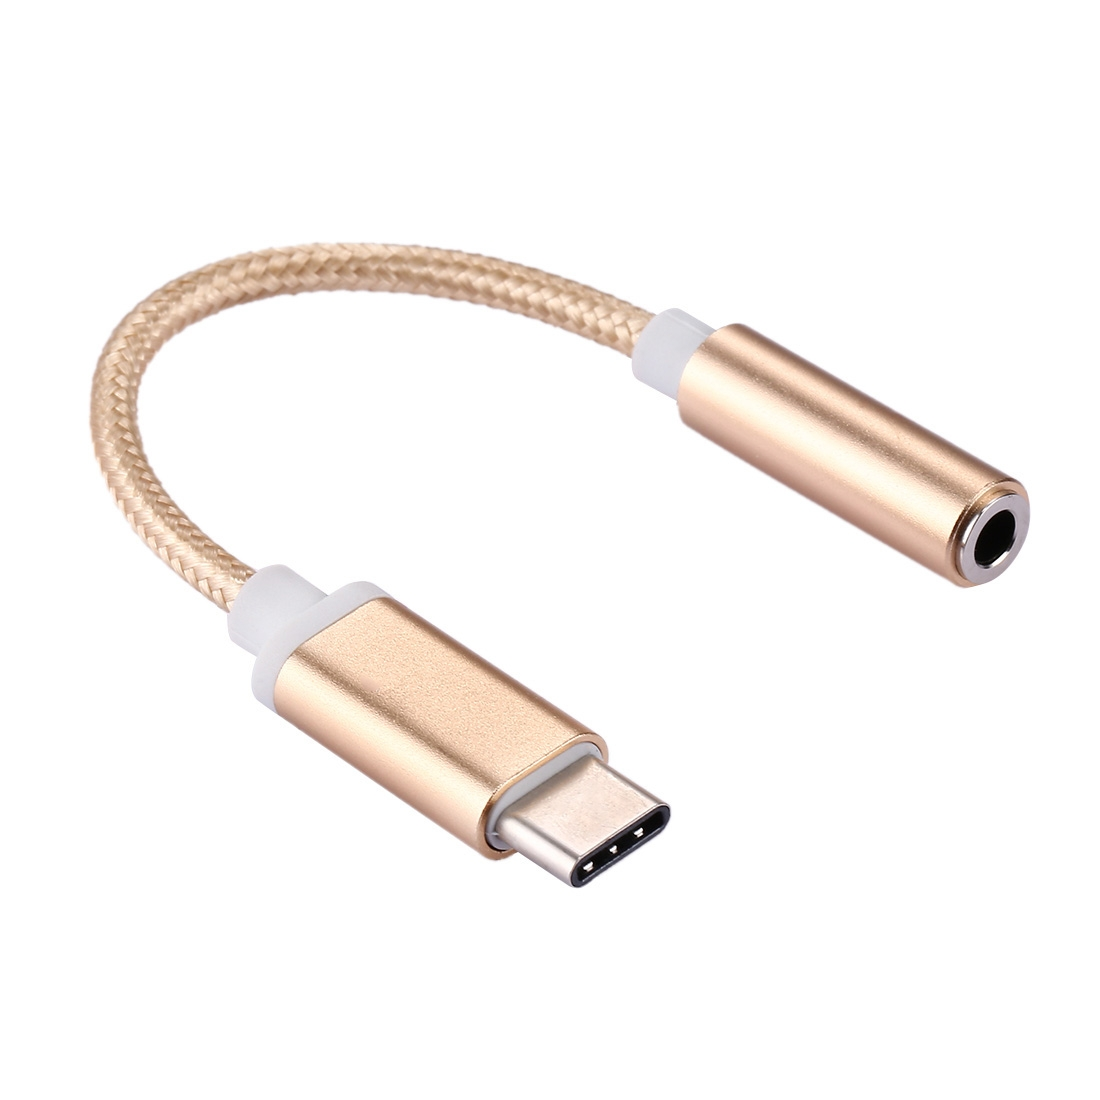 USB-C / Type-C Male to 3.5mm Female Weave Texture Audio Adapter for Samsung Galaxy S8 & S8 + / LG G6 / Huawei P10 & P10 Plus / Oneplus 5 / Xiaomi Mi6 & Max 2 /and other Smartphones, Rechargeable Devices, 10cm (Gold)